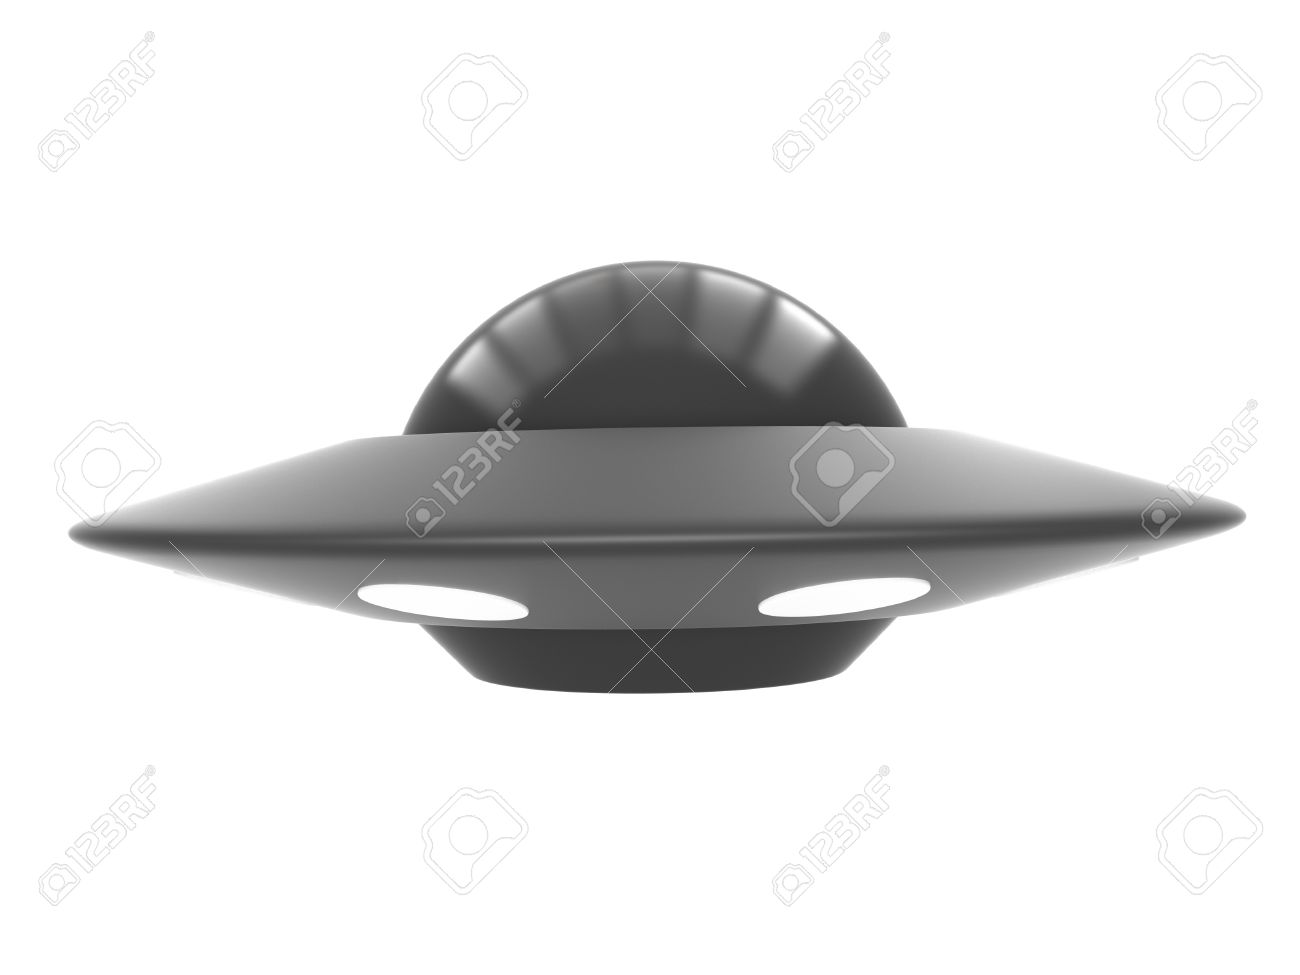 Ufo Isolated On White Background Stock Photo, Picture And Royalty ... for Ufo Black Background  186ref